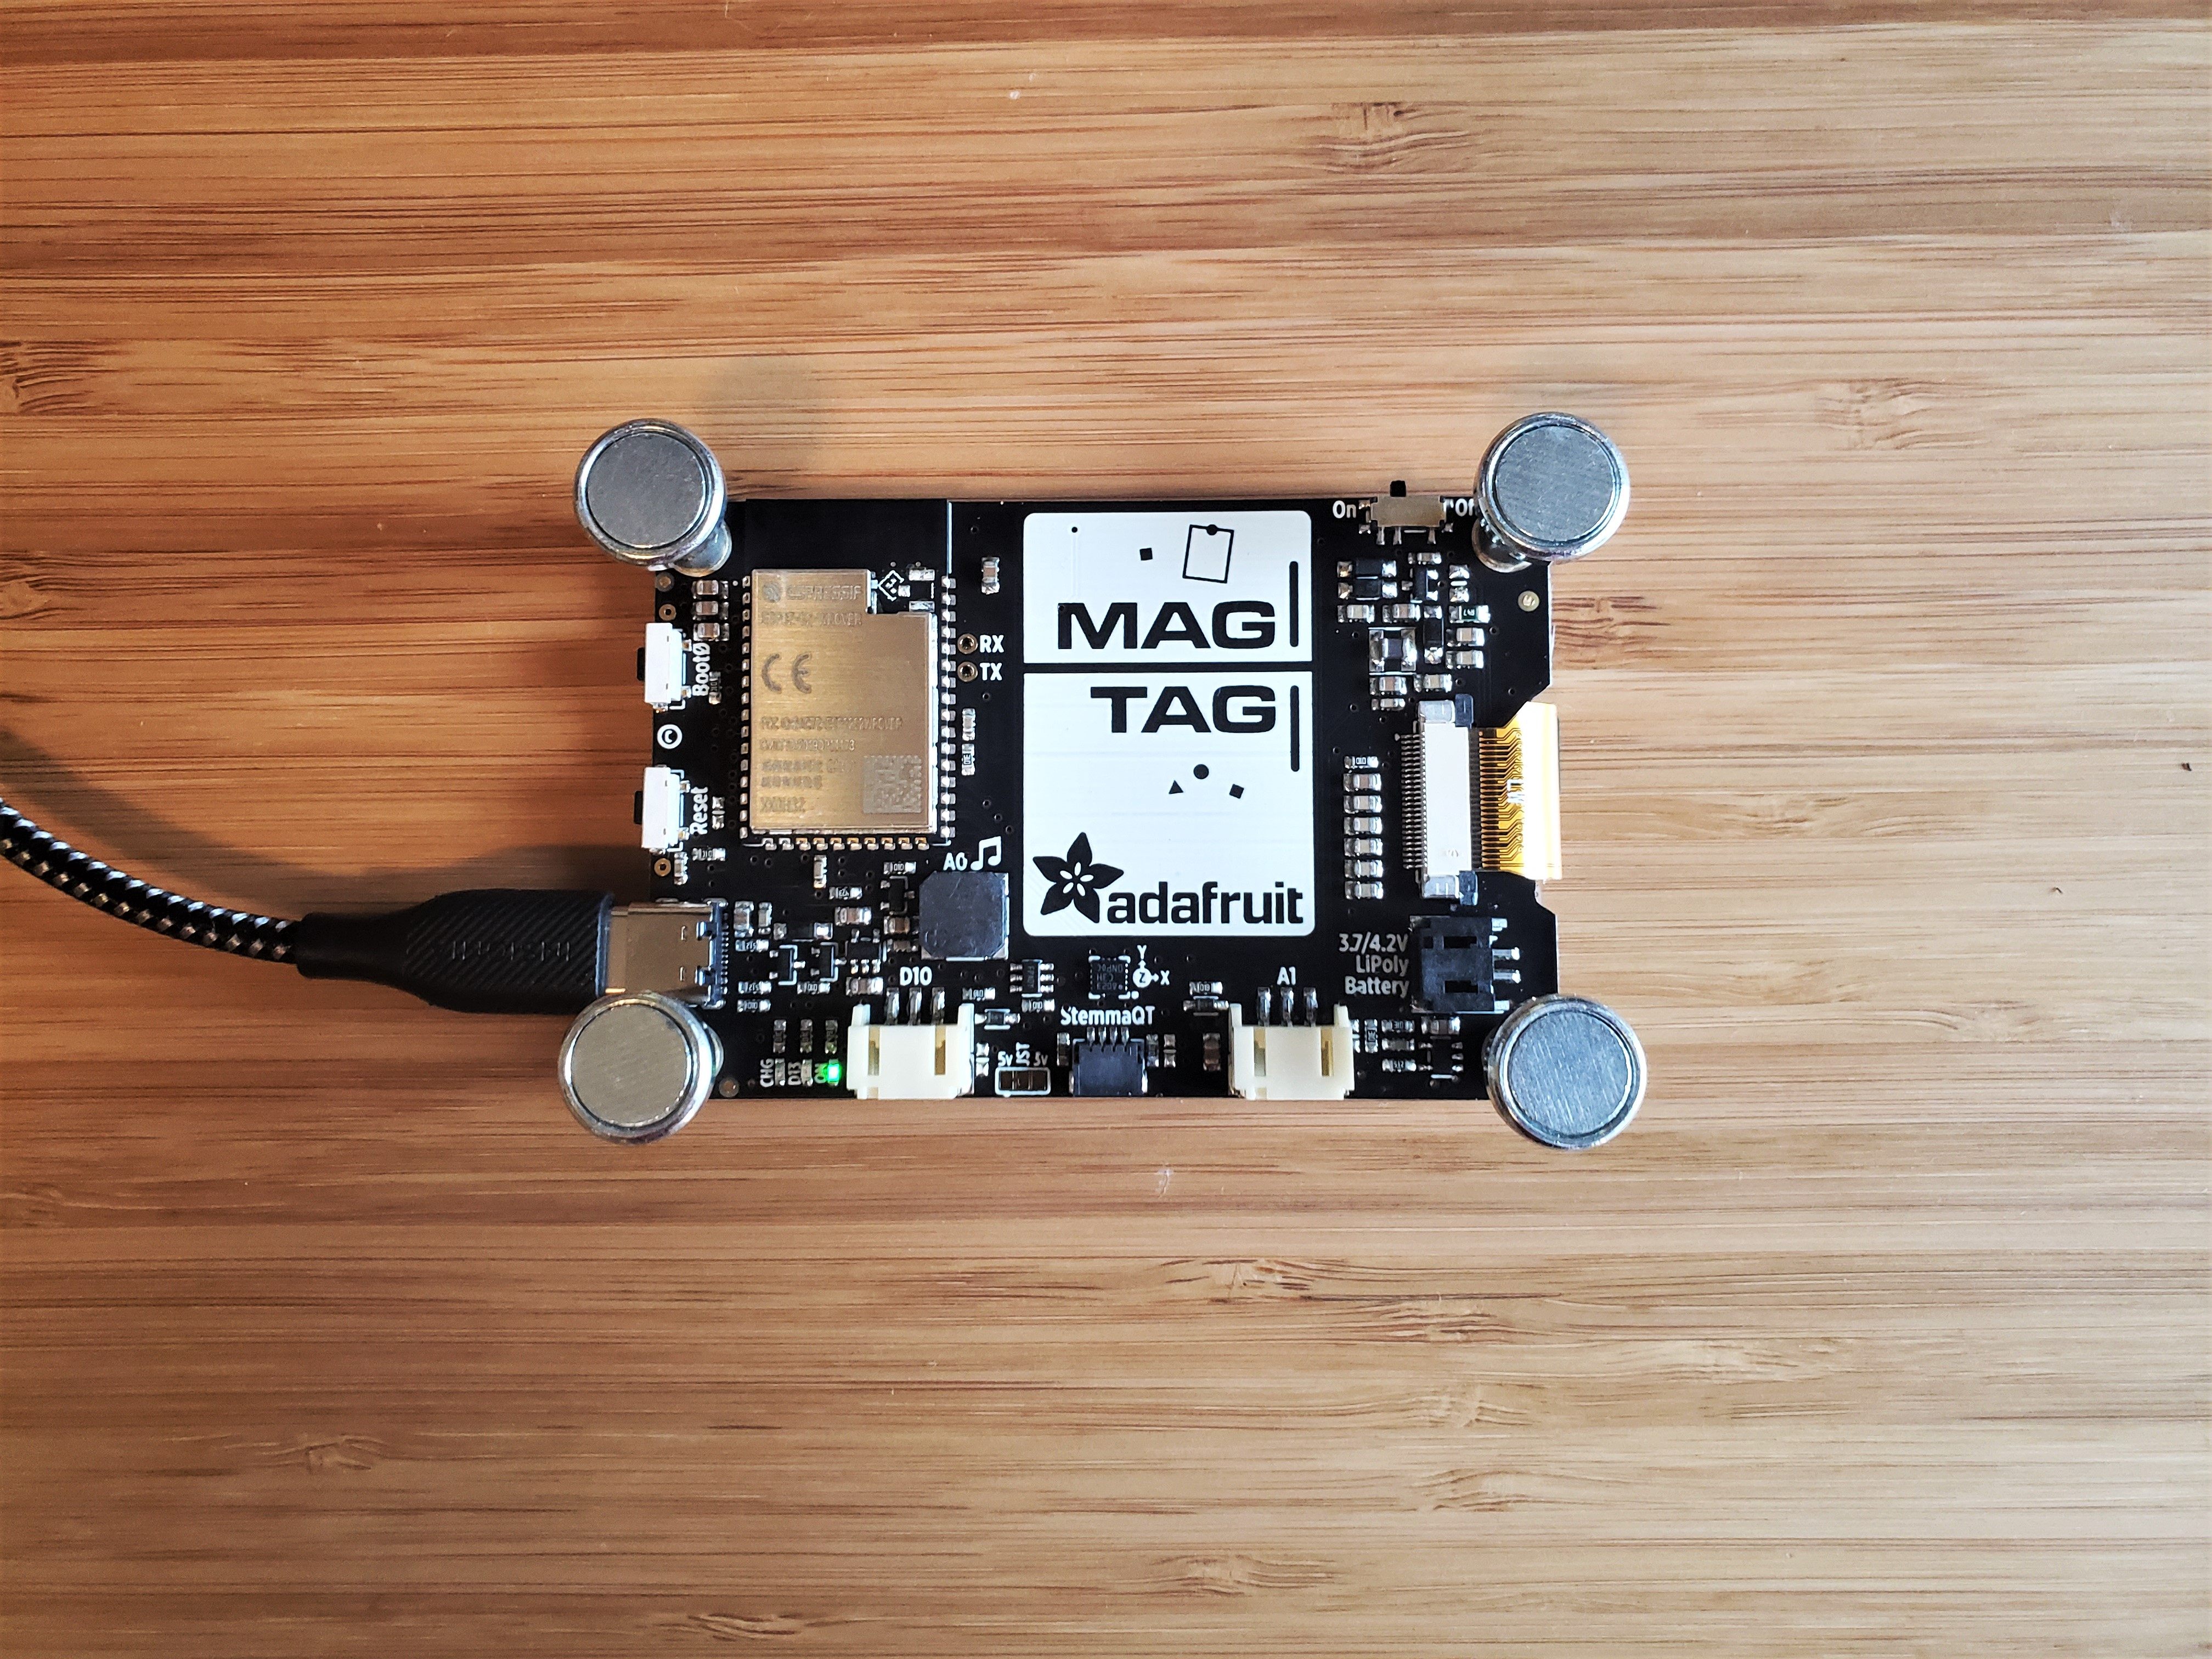 adafruit_products_MagTag_ConnectToComputer.jpg